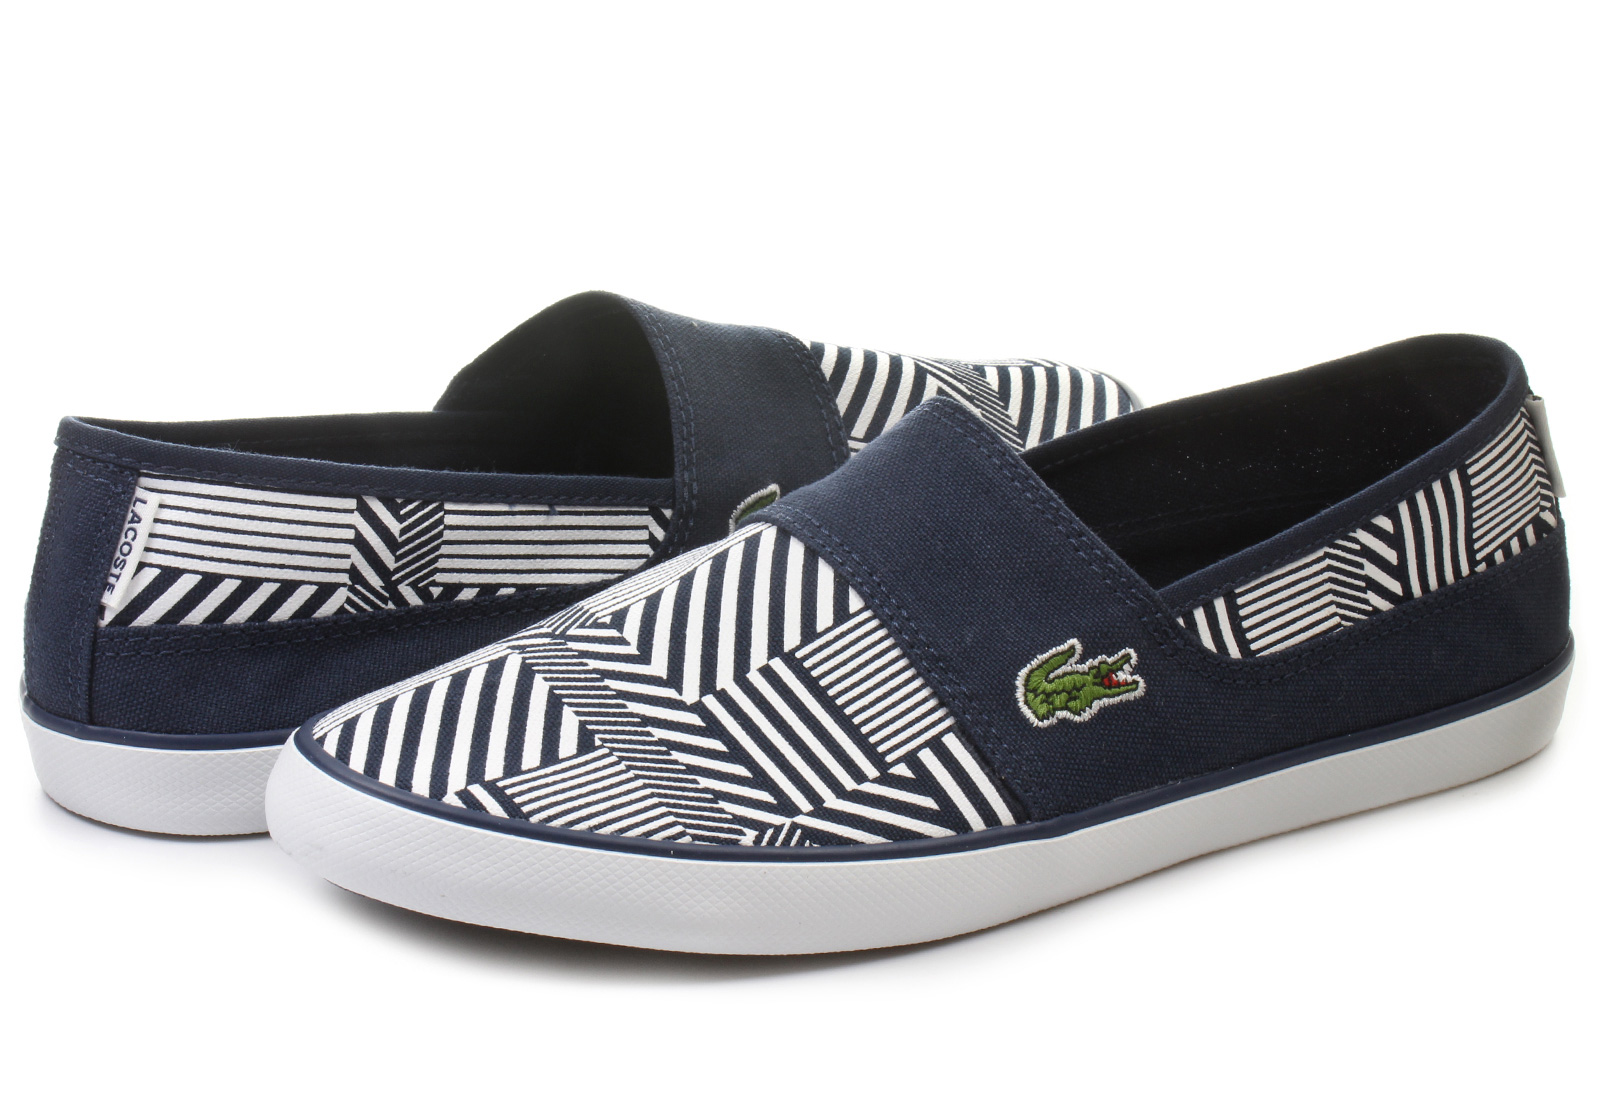 b76ed243e Lacoste Shoes - Marice - 141spm1046-121 - Online shop for sneakers ...